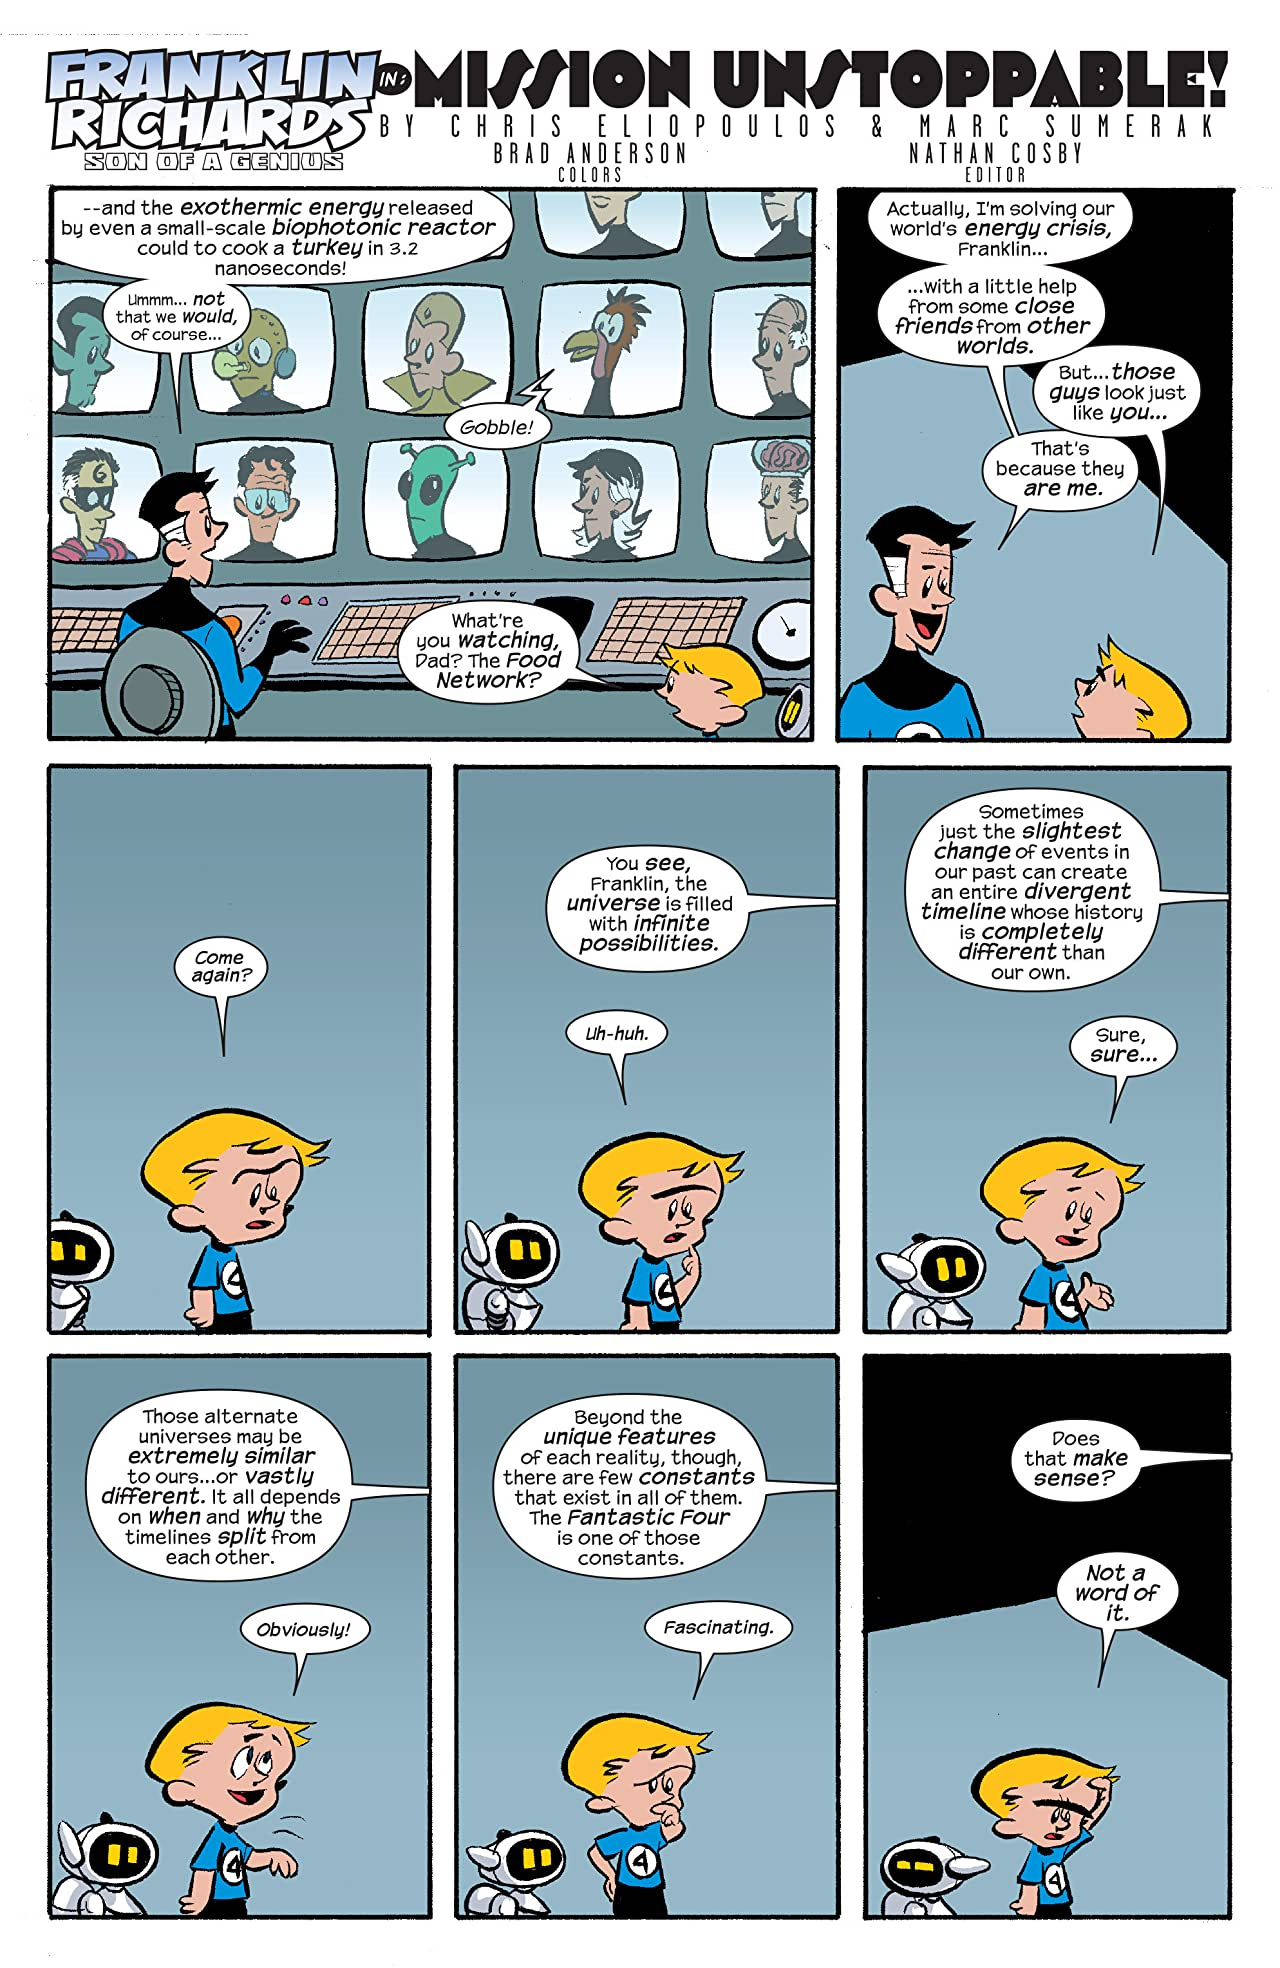 Franklin Richards: Sons of Geniuses (2008) #1